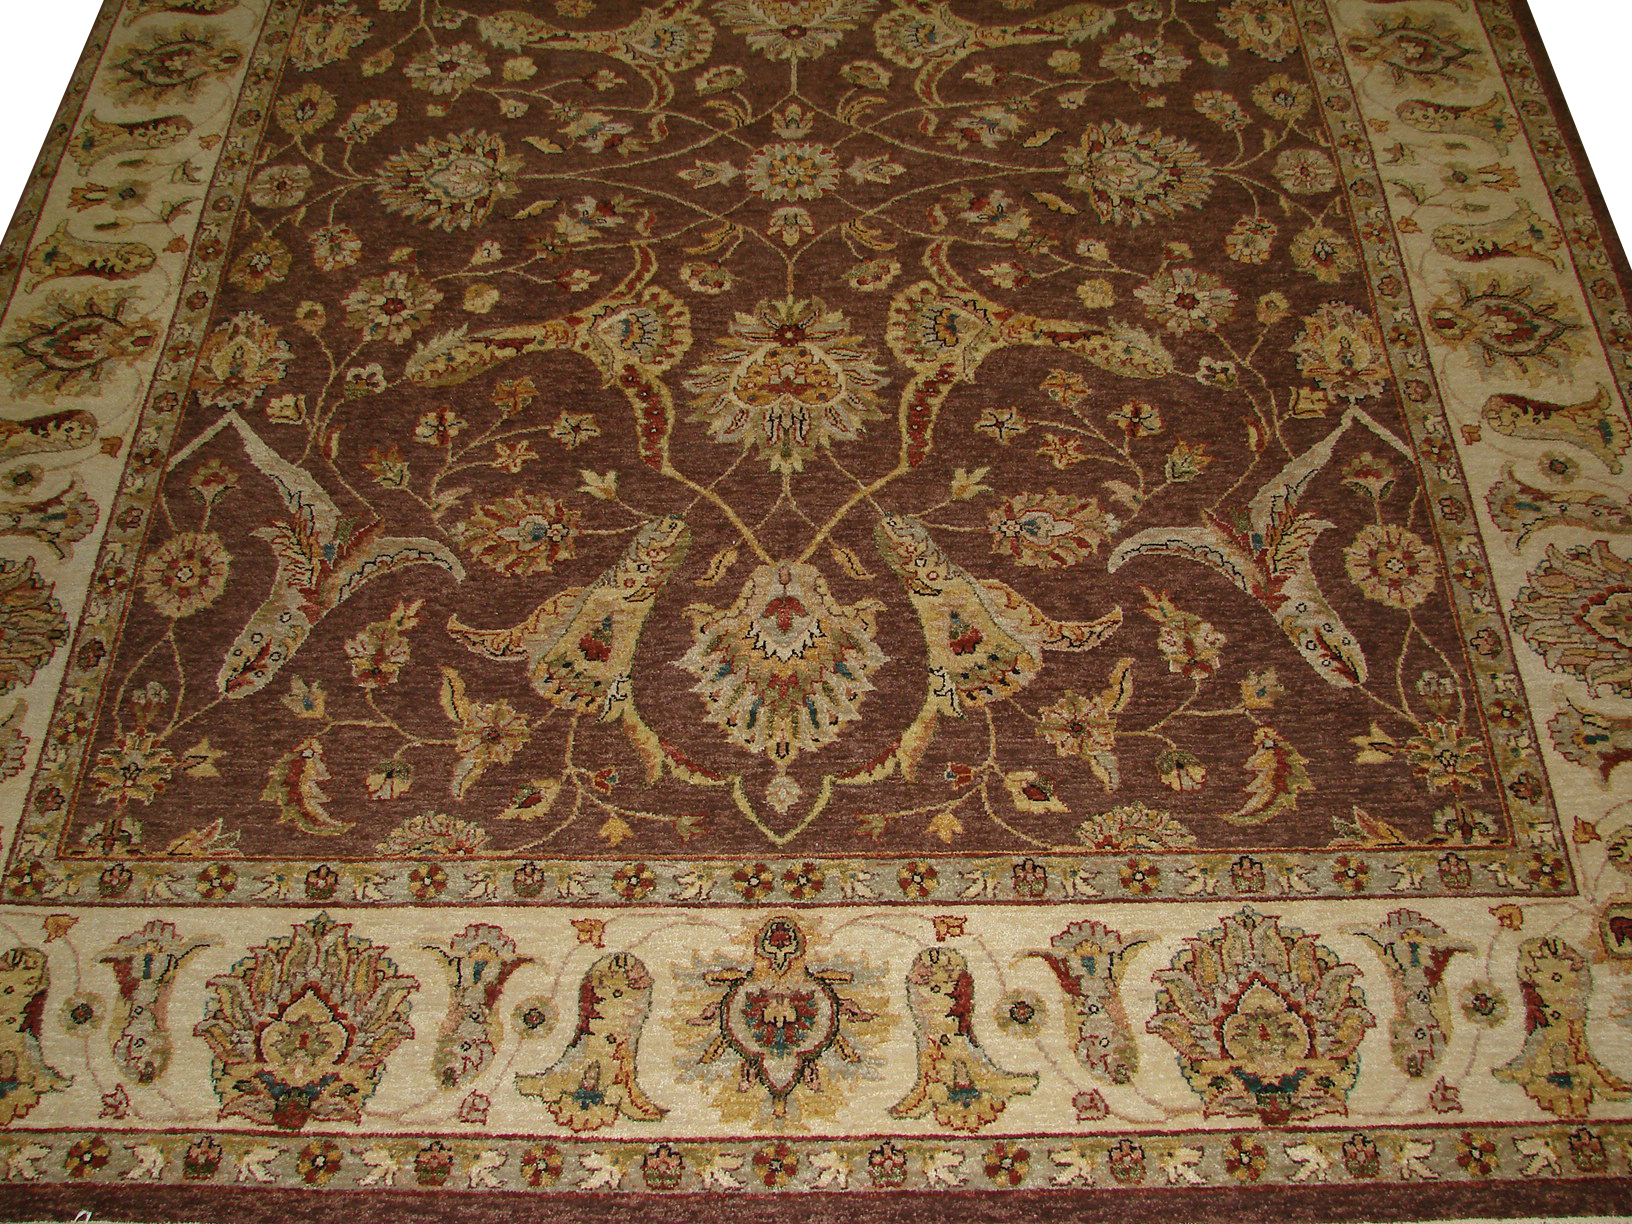 8x10 Traditional Hand Knotted Wool Area Rug - MR5171